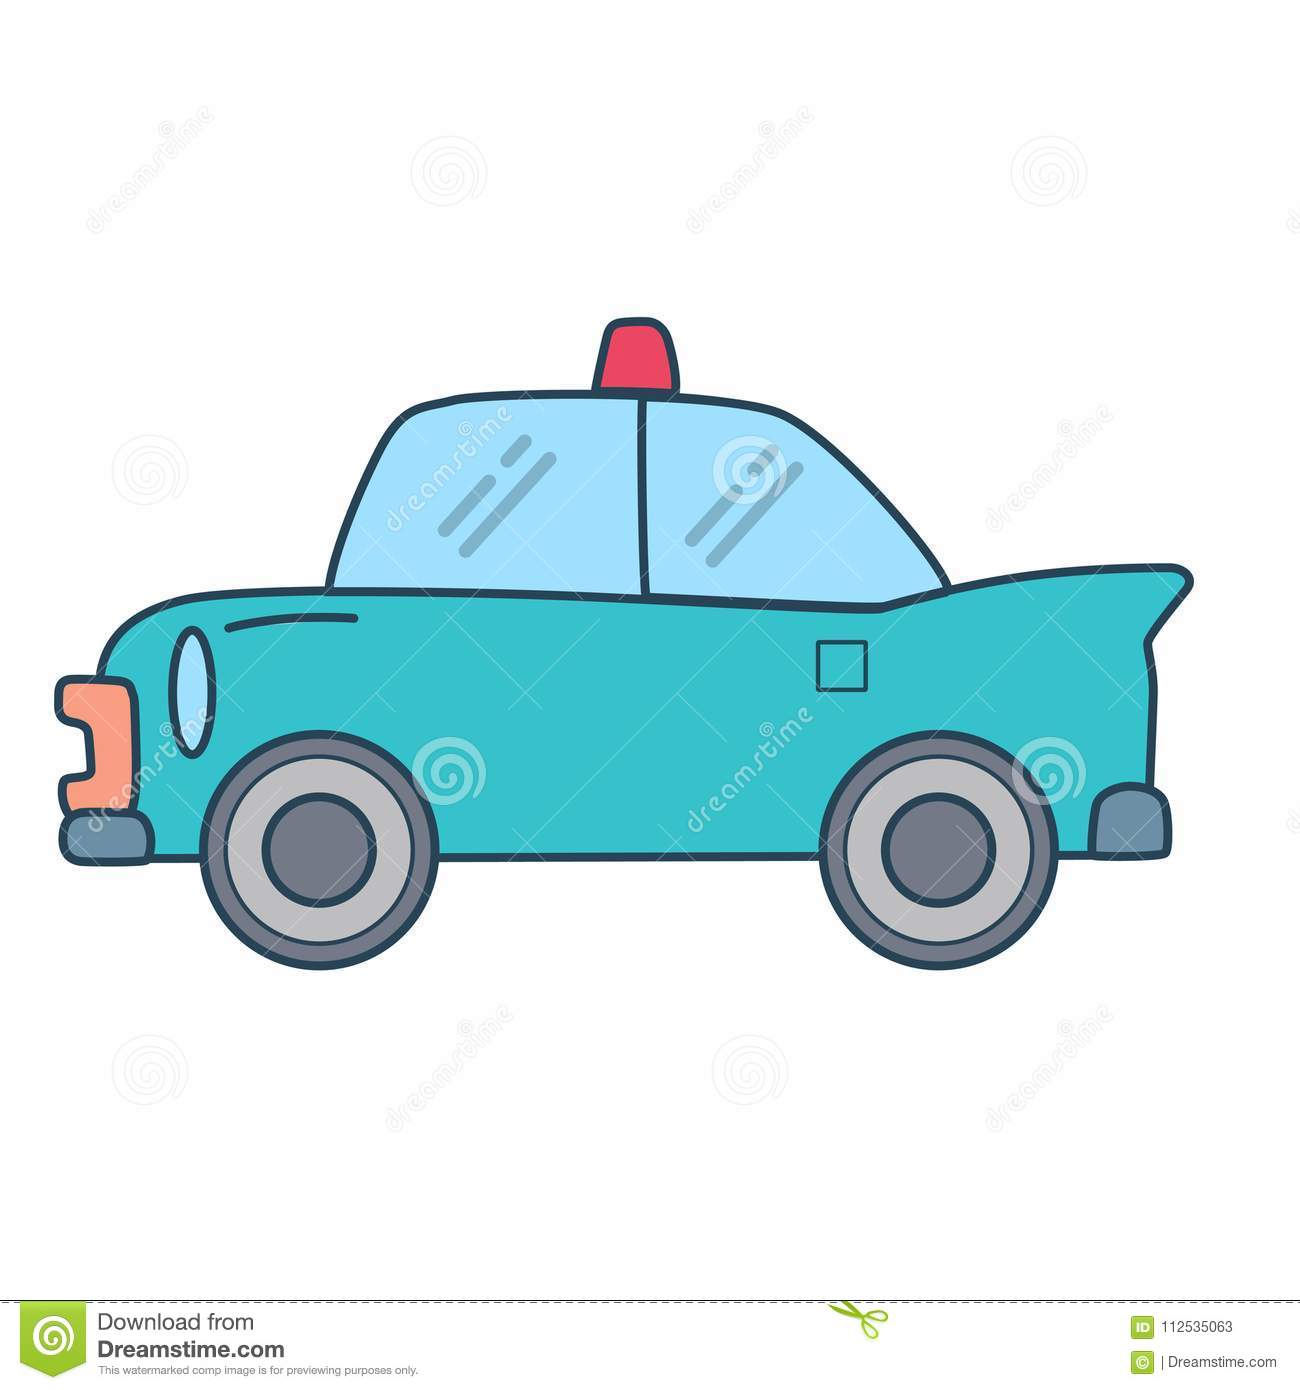 Police Car Website >> Linear Police Car On White Background Stock Illustration